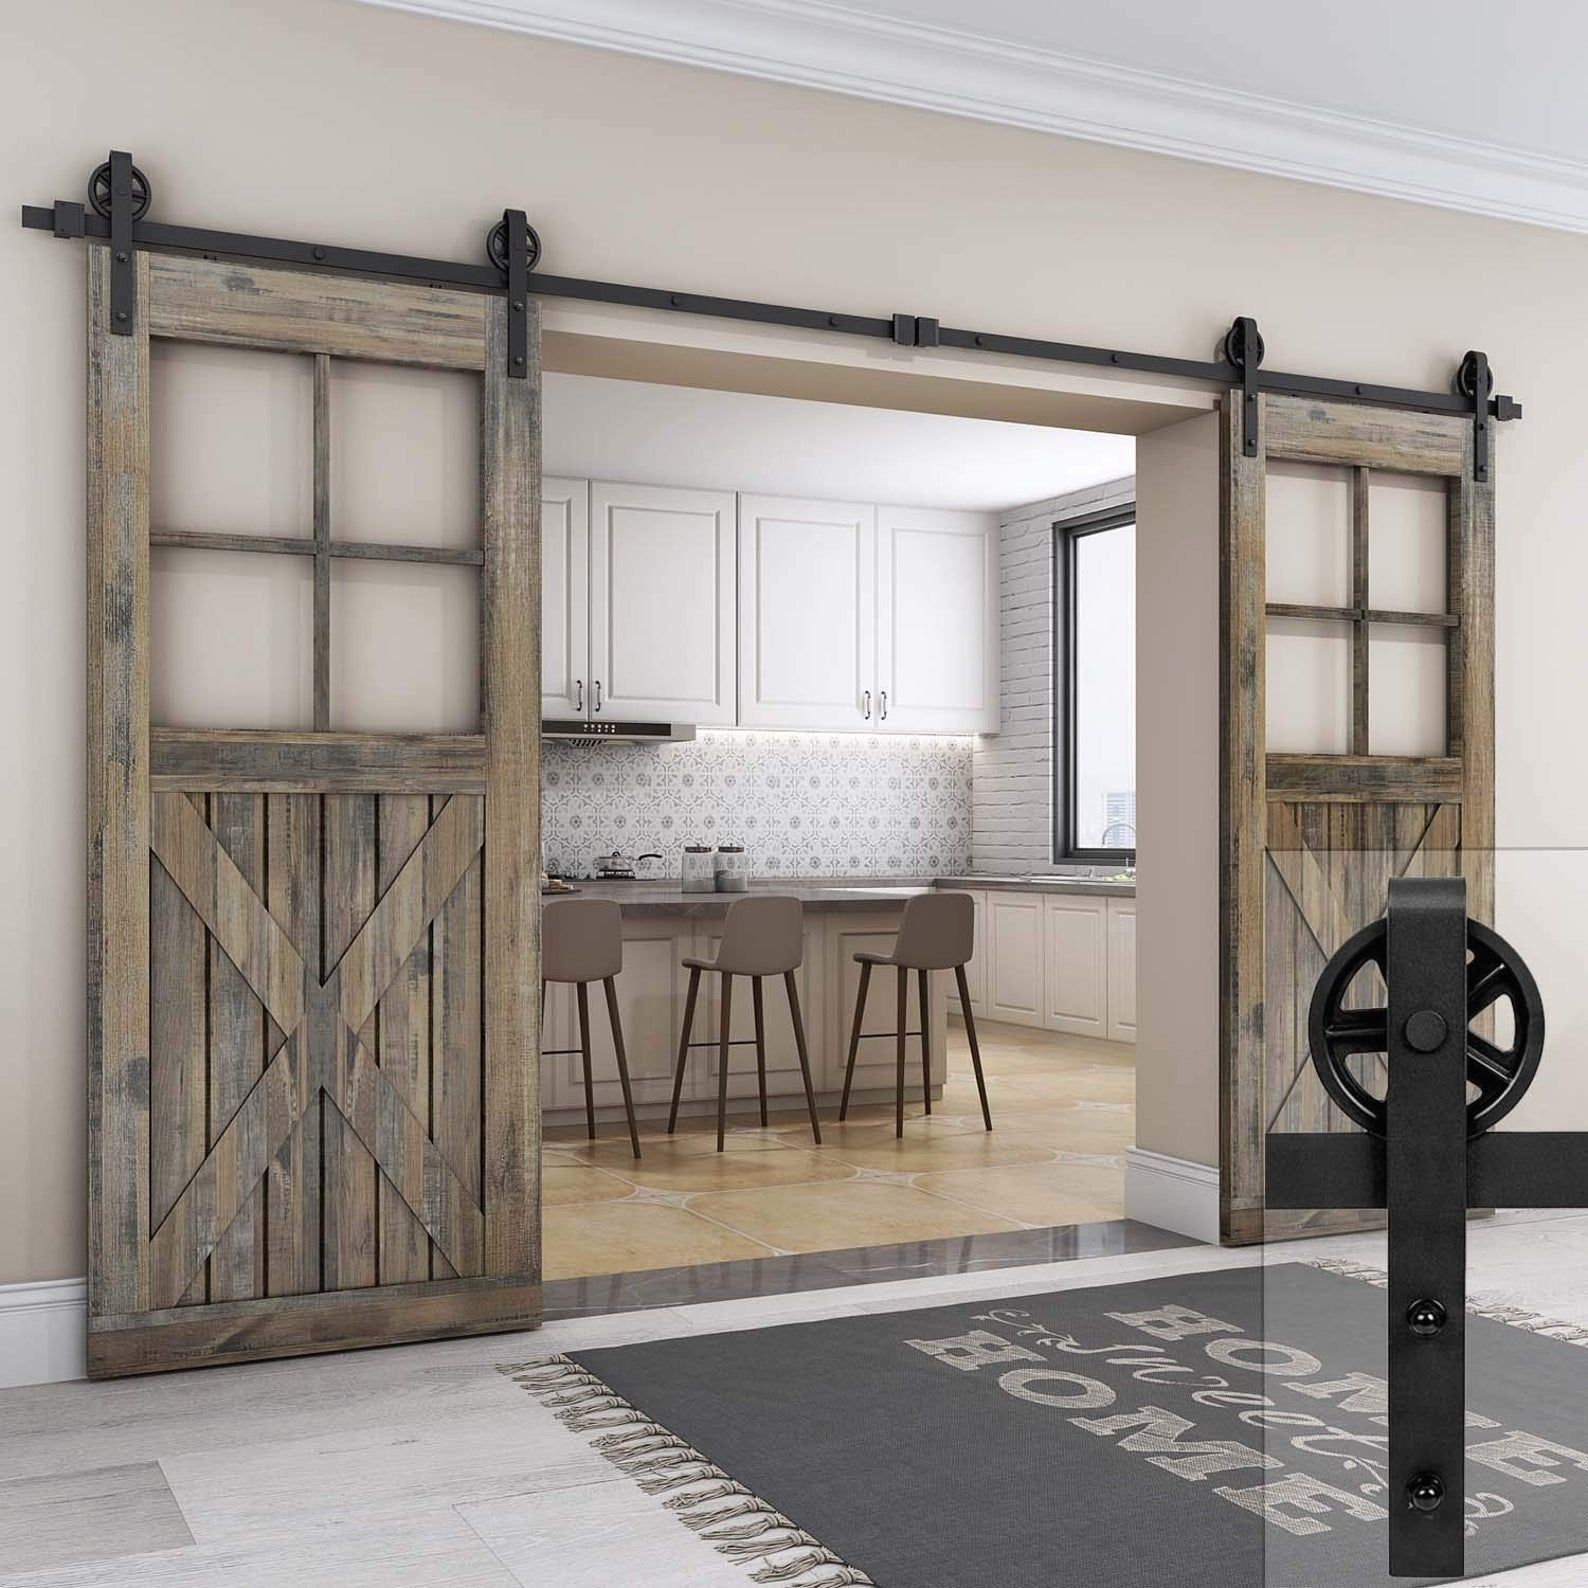 Sliding Double Door Barn Door Hardware Kit Heavy Duty Easy To Install Smooth Quiet F In 2020 Interior Sliding Barn Doors Glass Barn Doors Double Sliding Barn Doors